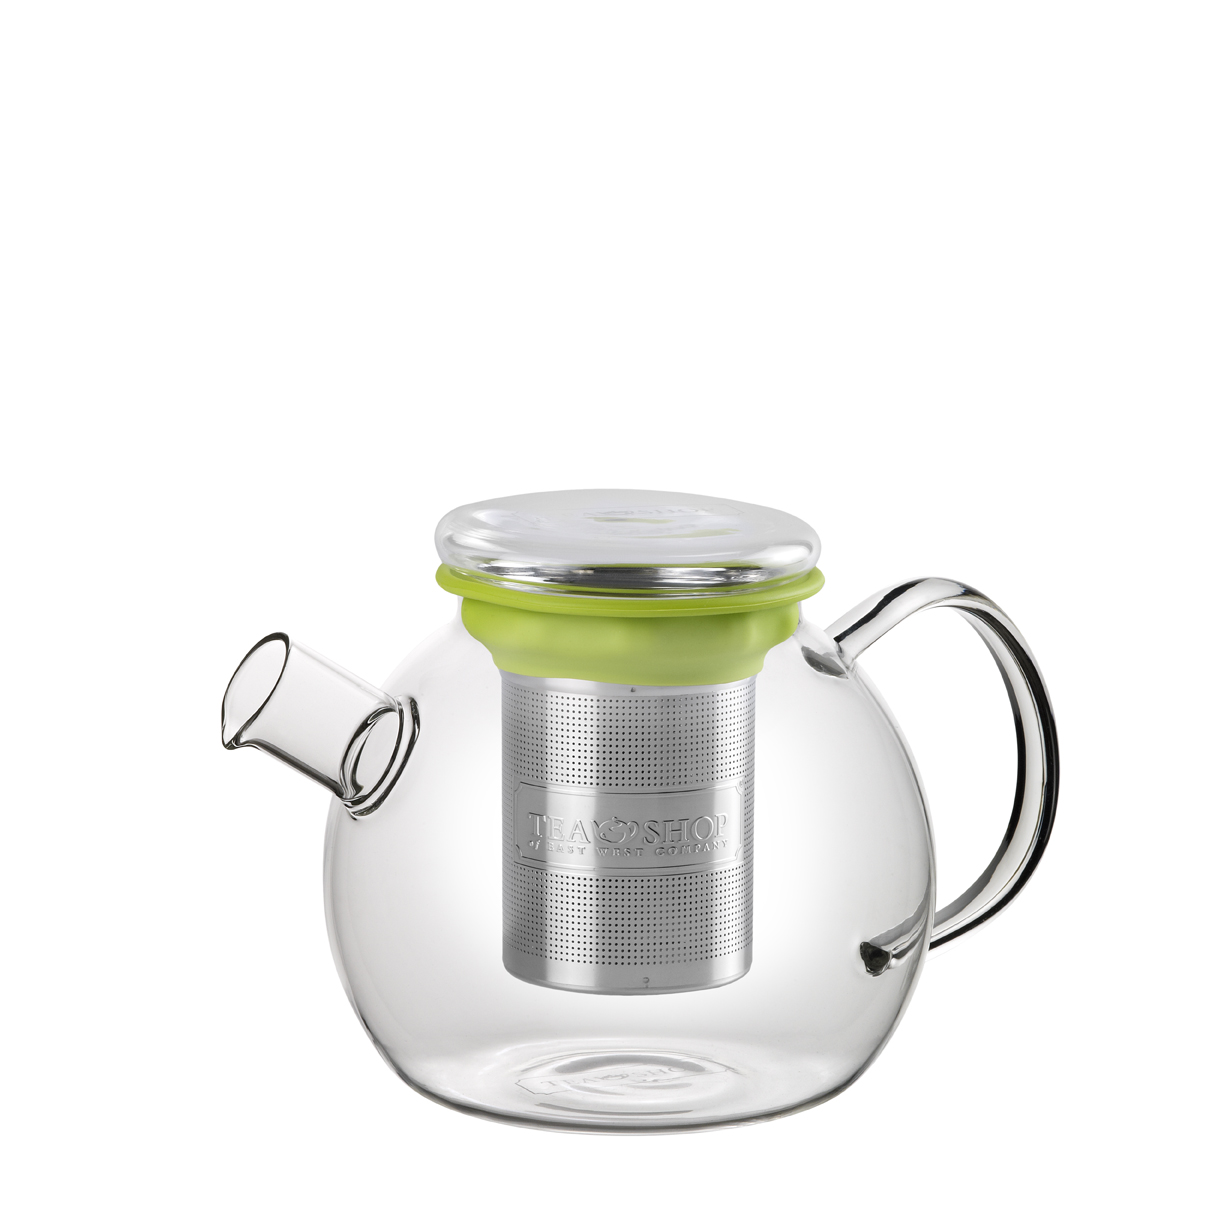 All in One Teapot Green 1l. Glass teapots Tea Shop®